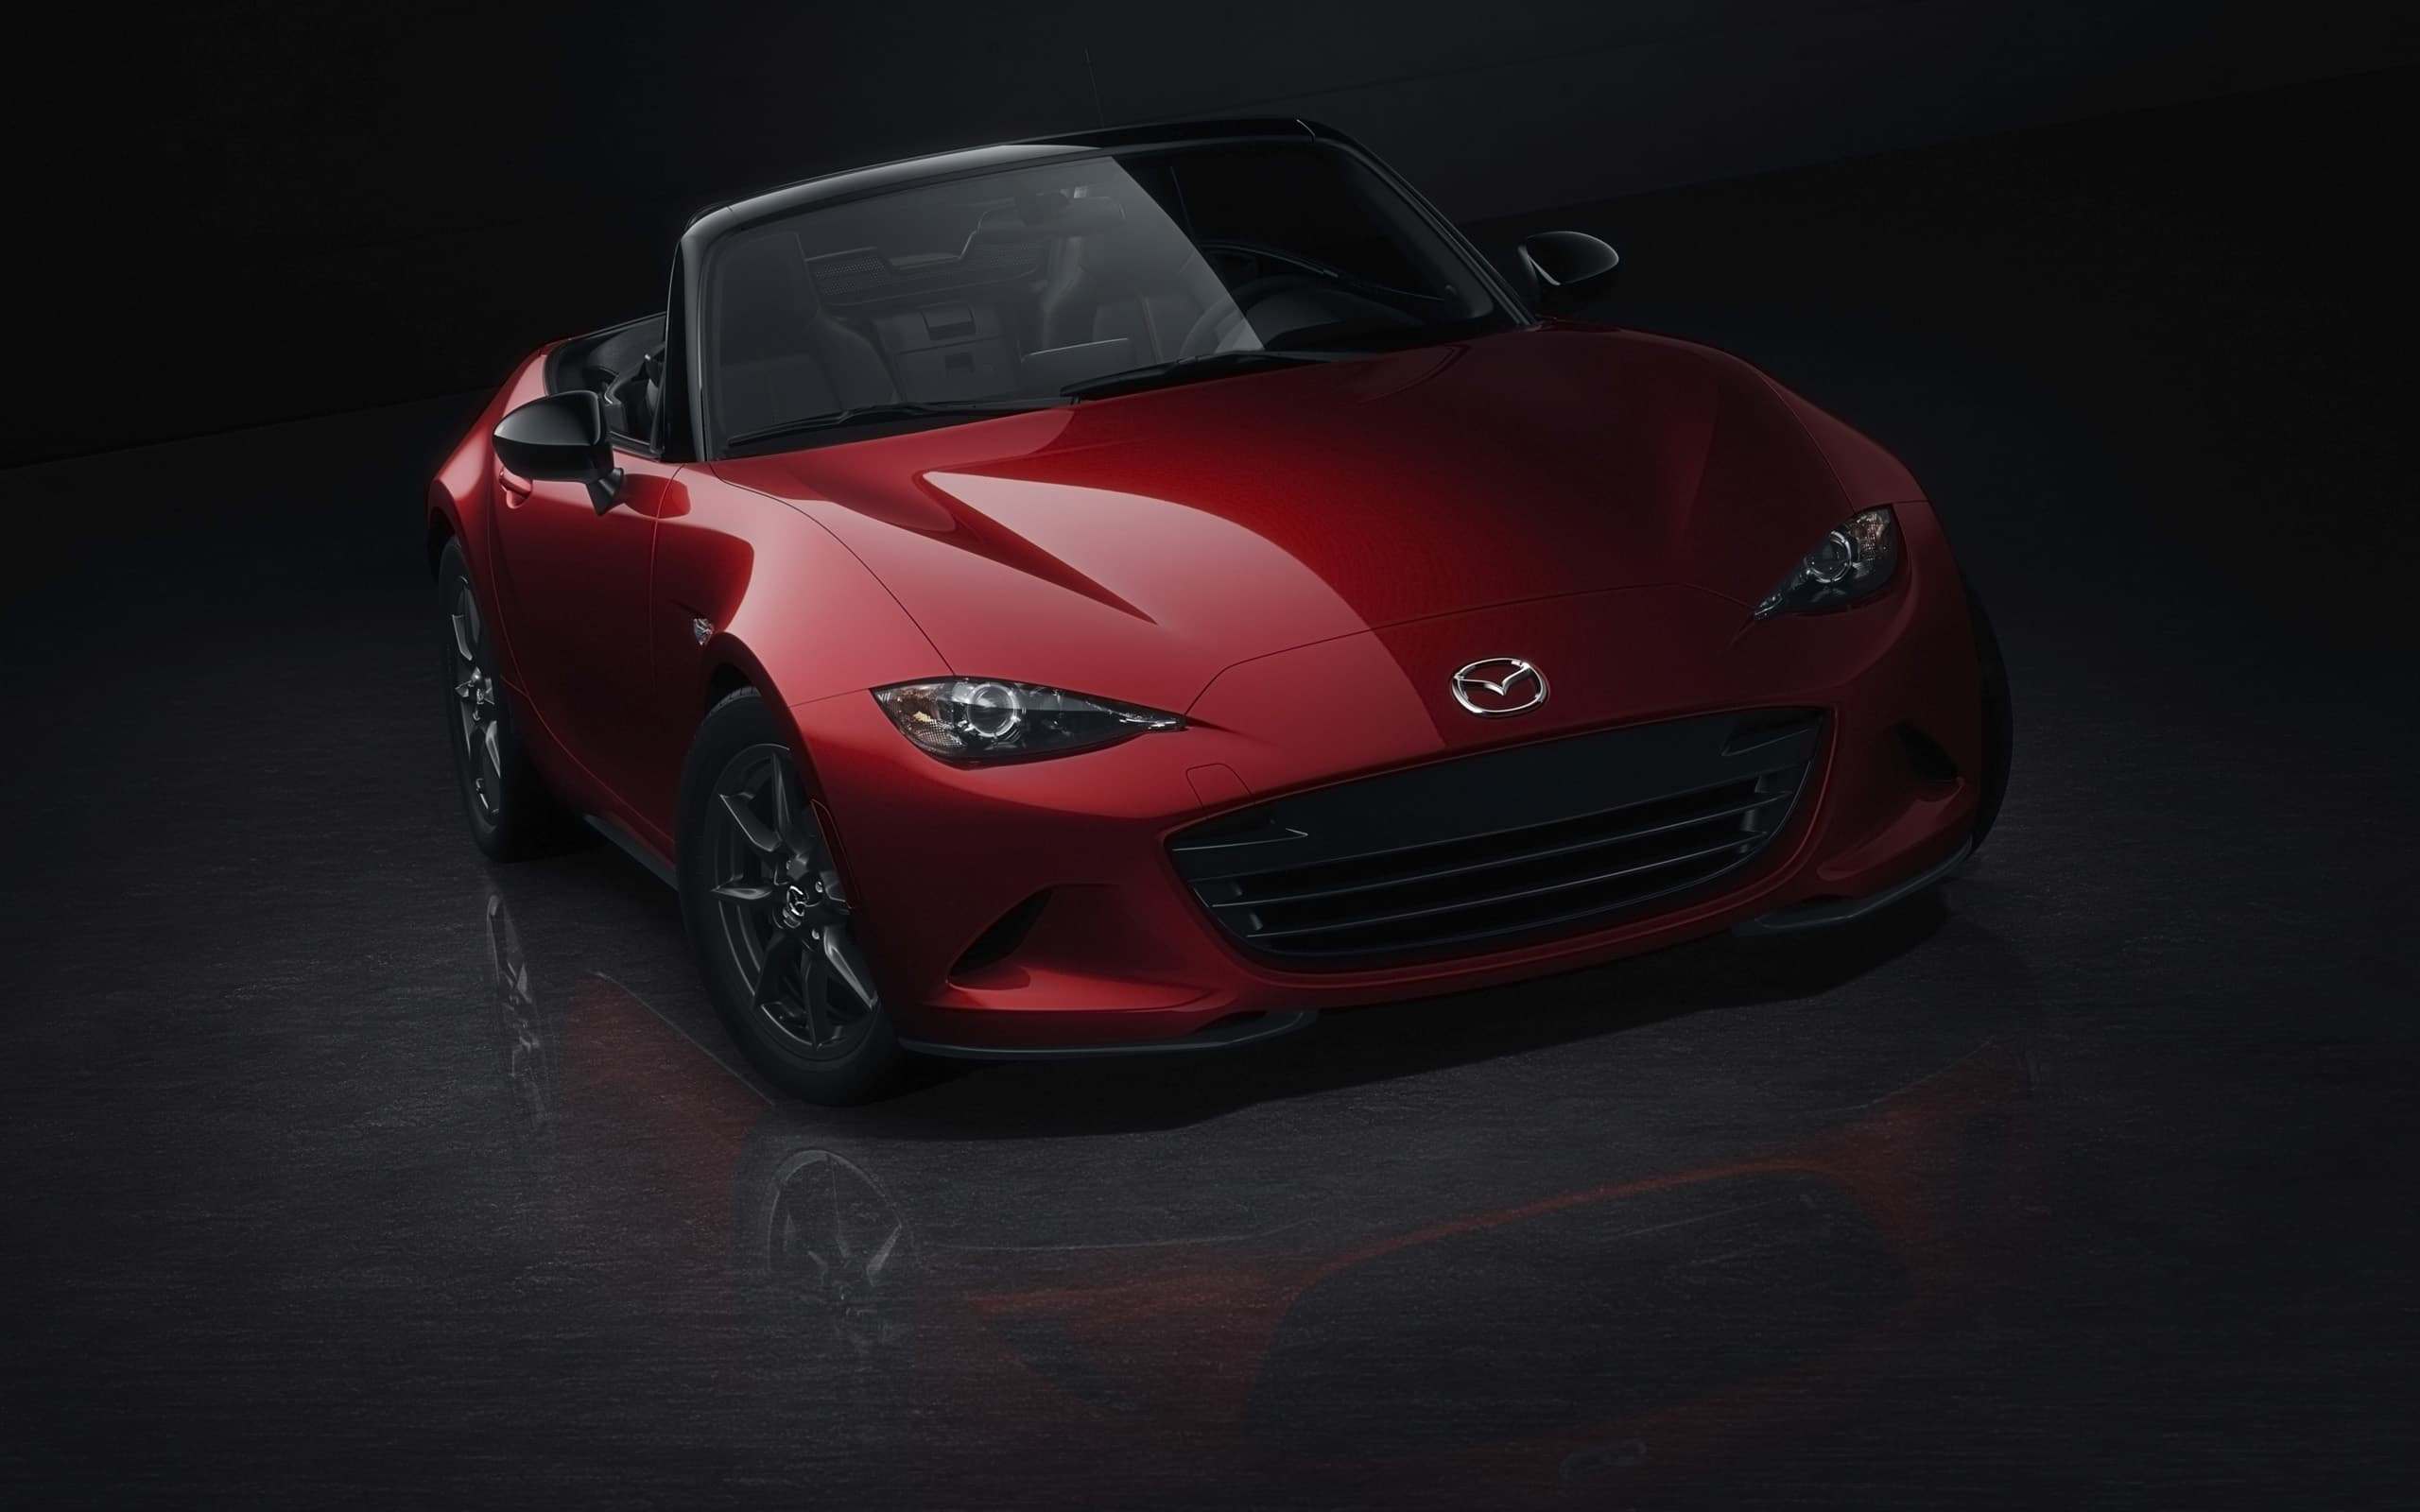 red 2016 Mazda MX-5 Miata black background image